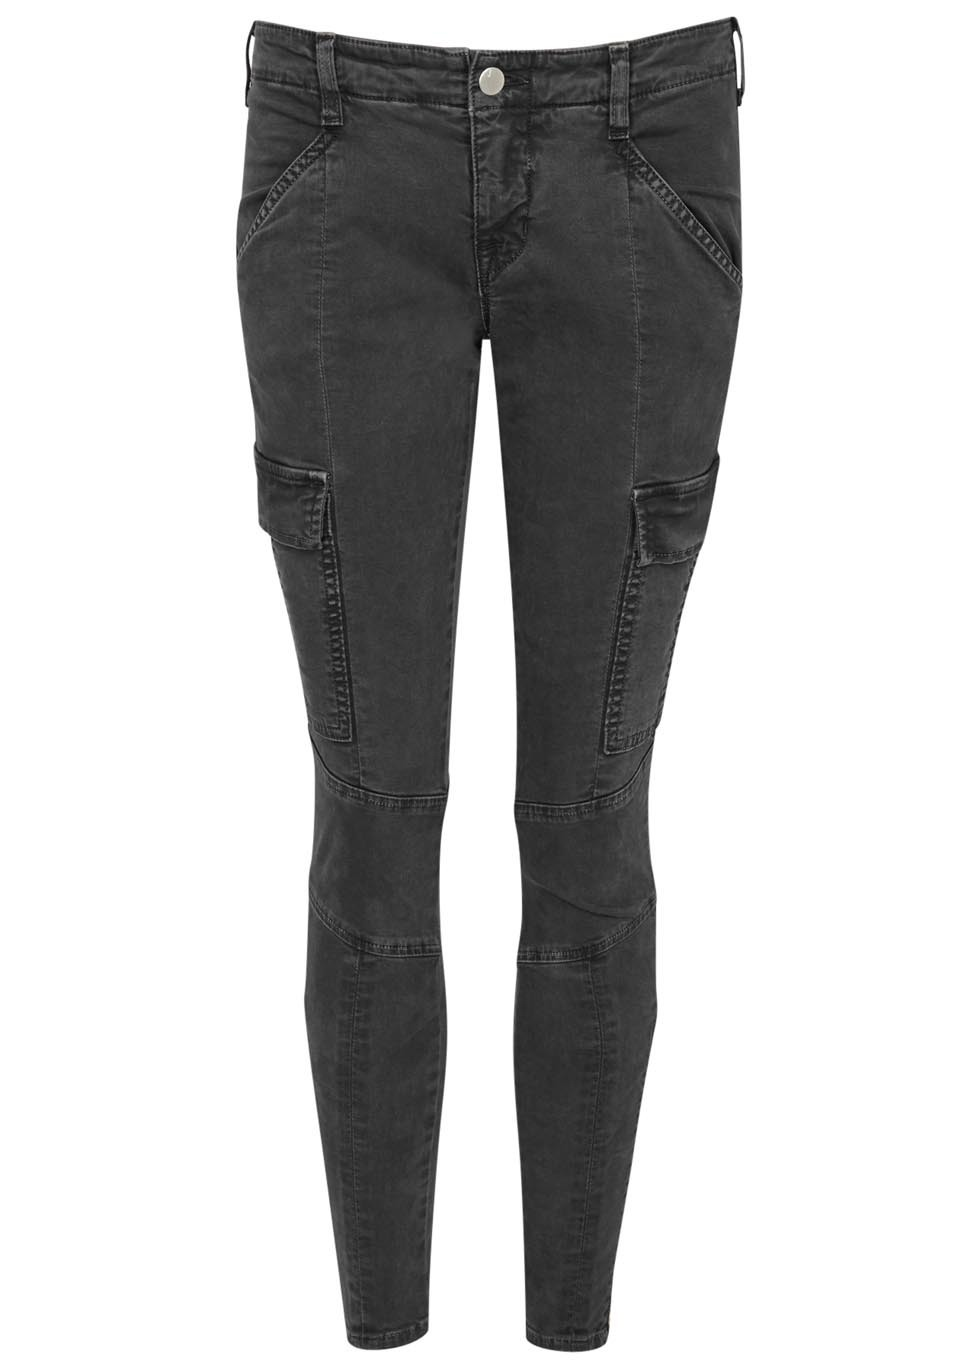 Houlihan Grey Skinny Cargo Trousers - pattern: plain; waist: mid/regular rise; style: cargo; predominant colour: charcoal; occasions: casual, creative work; length: ankle length; fibres: cotton - stretch; texture group: denim; fit: skinny/tight leg; pattern type: fabric; season: s/s 2016; wardrobe: basic